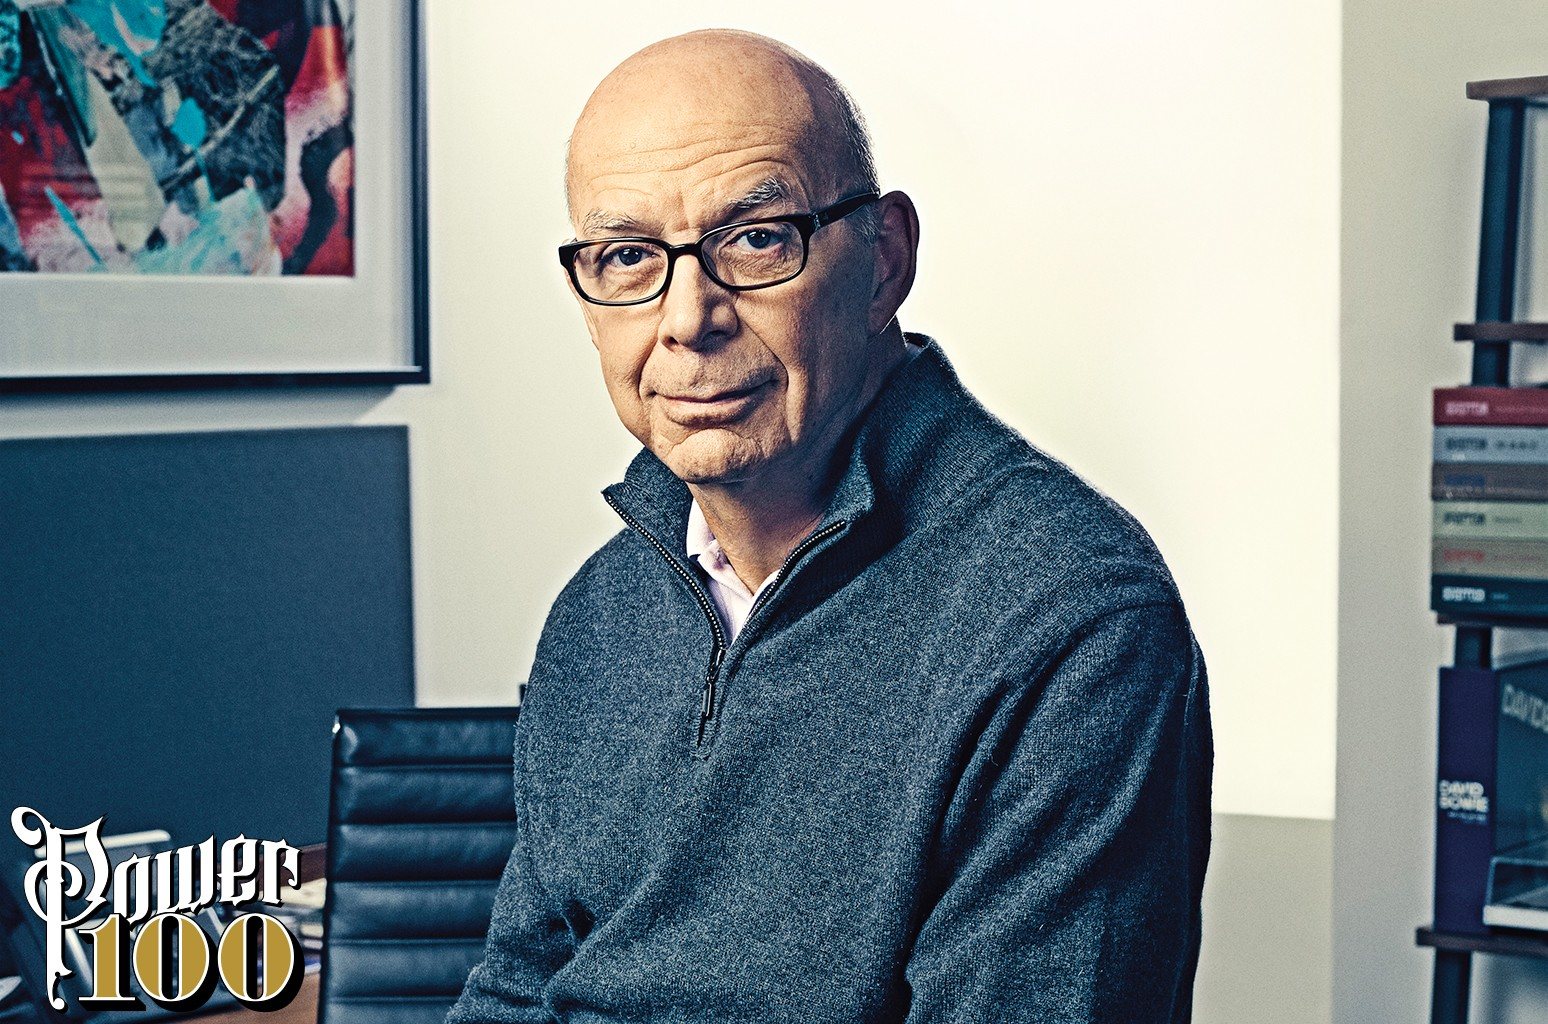 Stephen Cooper photographed on Jan.25 at Warner Music Group in New York.